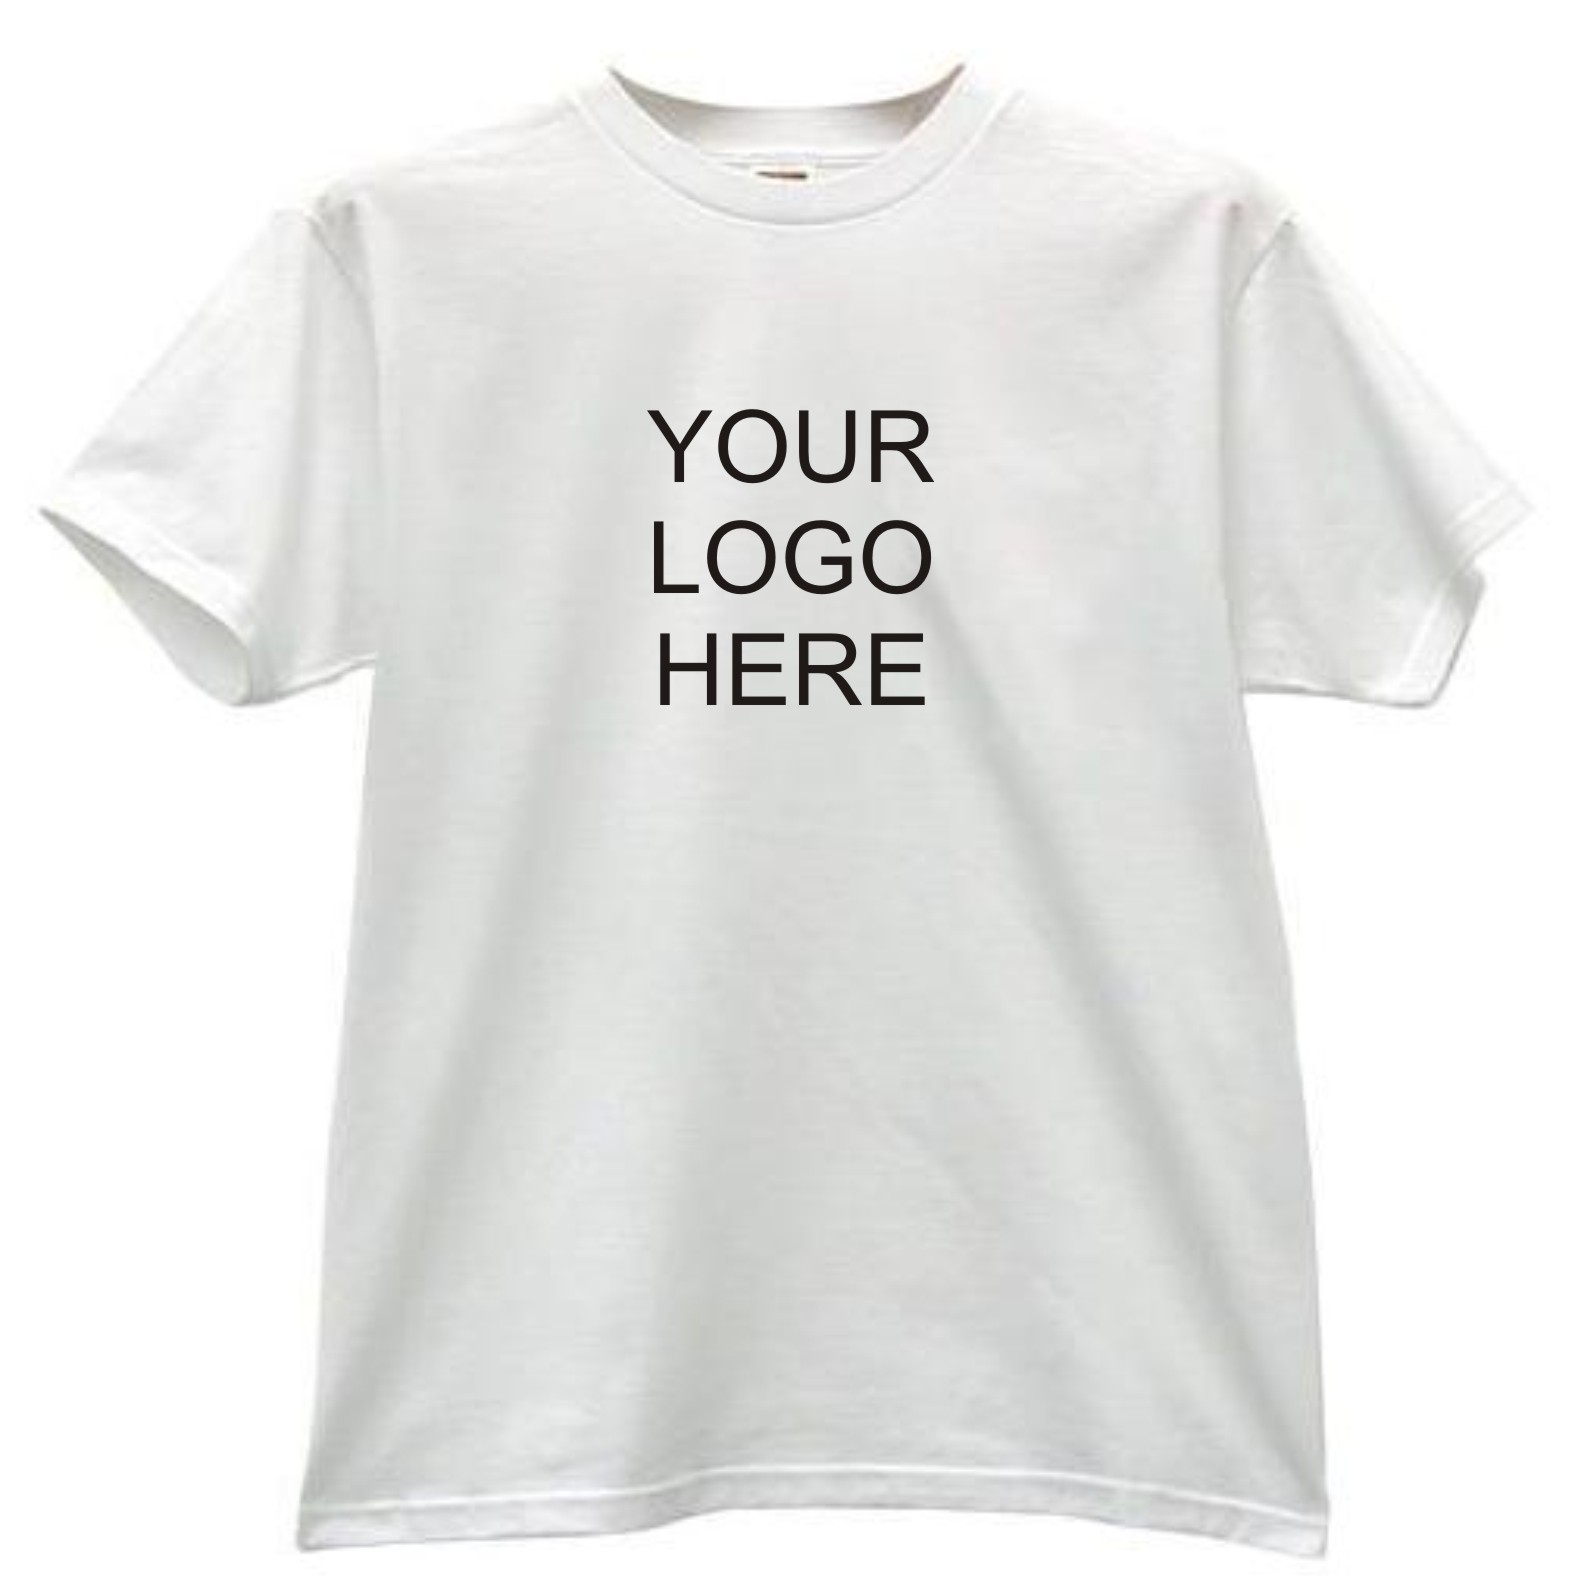 7 ways to use custom t shirts to advertise your company. Black Bedroom Furniture Sets. Home Design Ideas